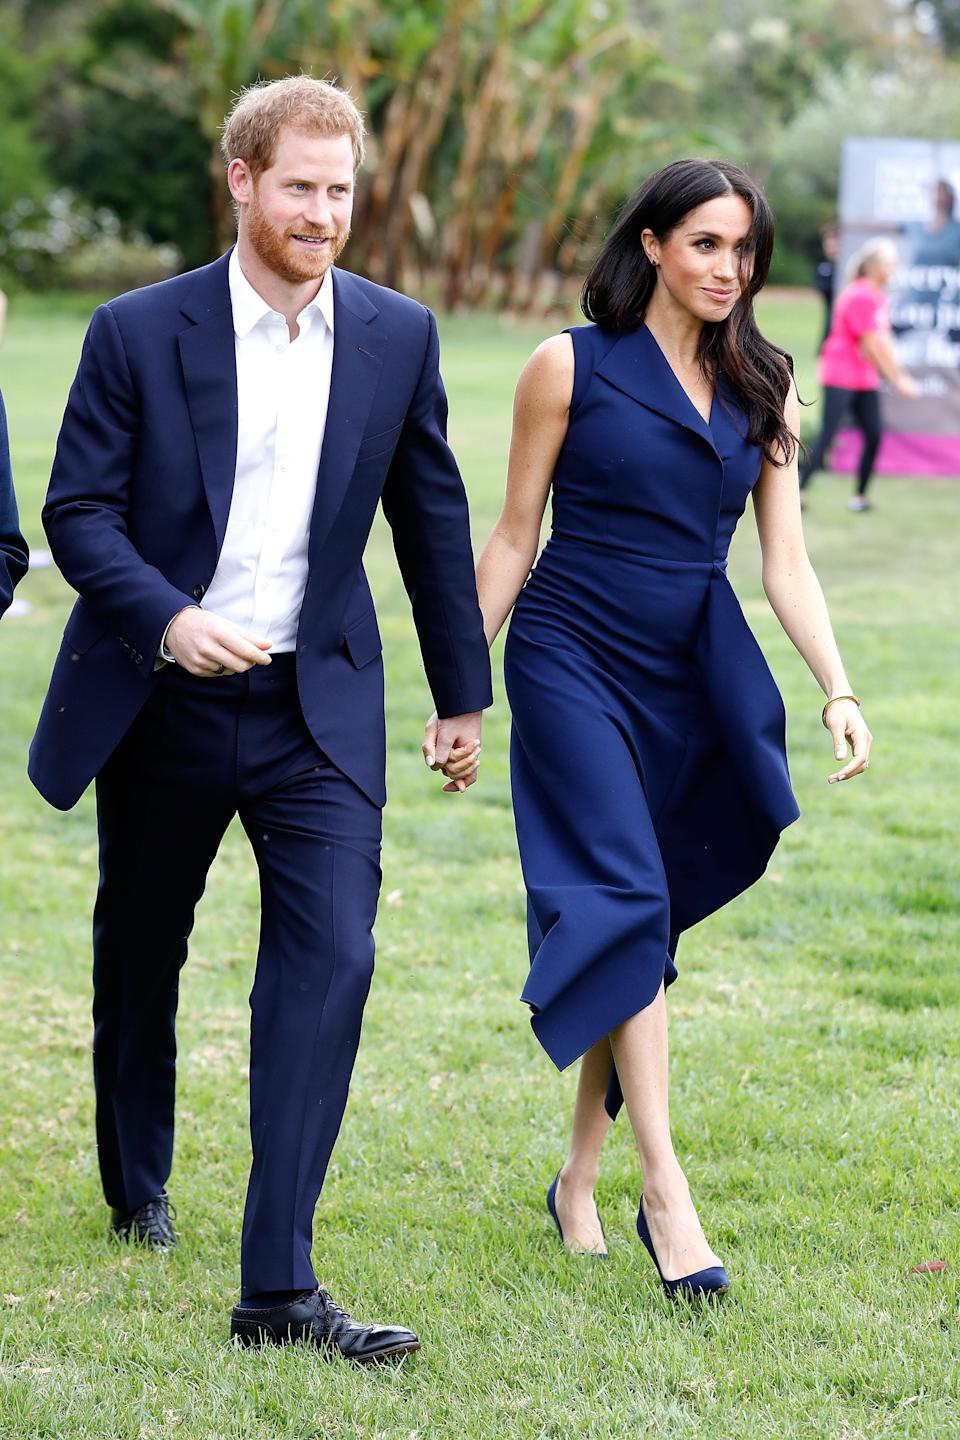 Earlier in the day Prince Harry and Meghan Markle greeted fans. Photo: Getty